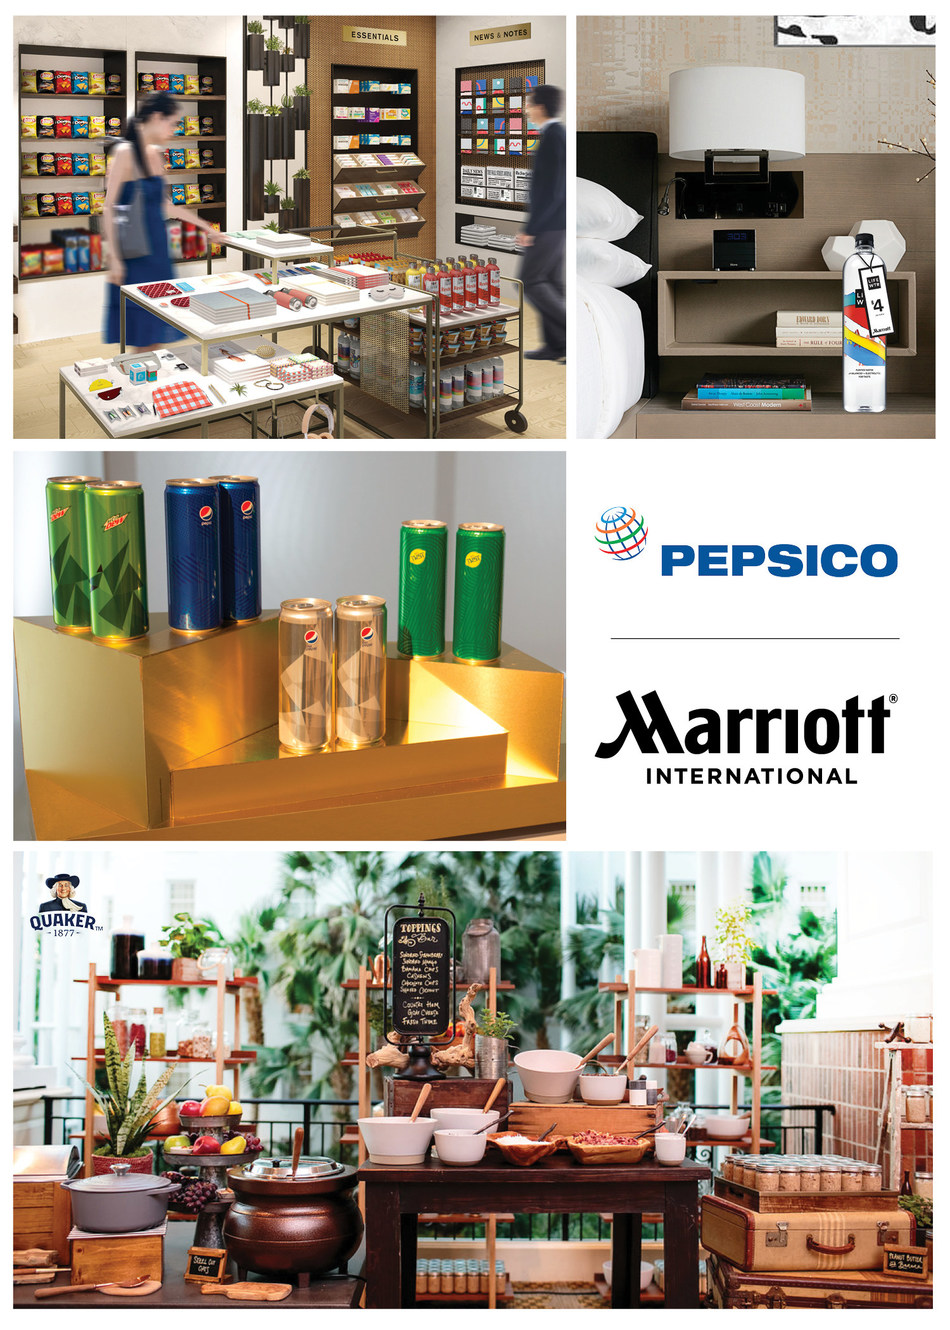 Marriott International Expands Relationship with PepsiCo.